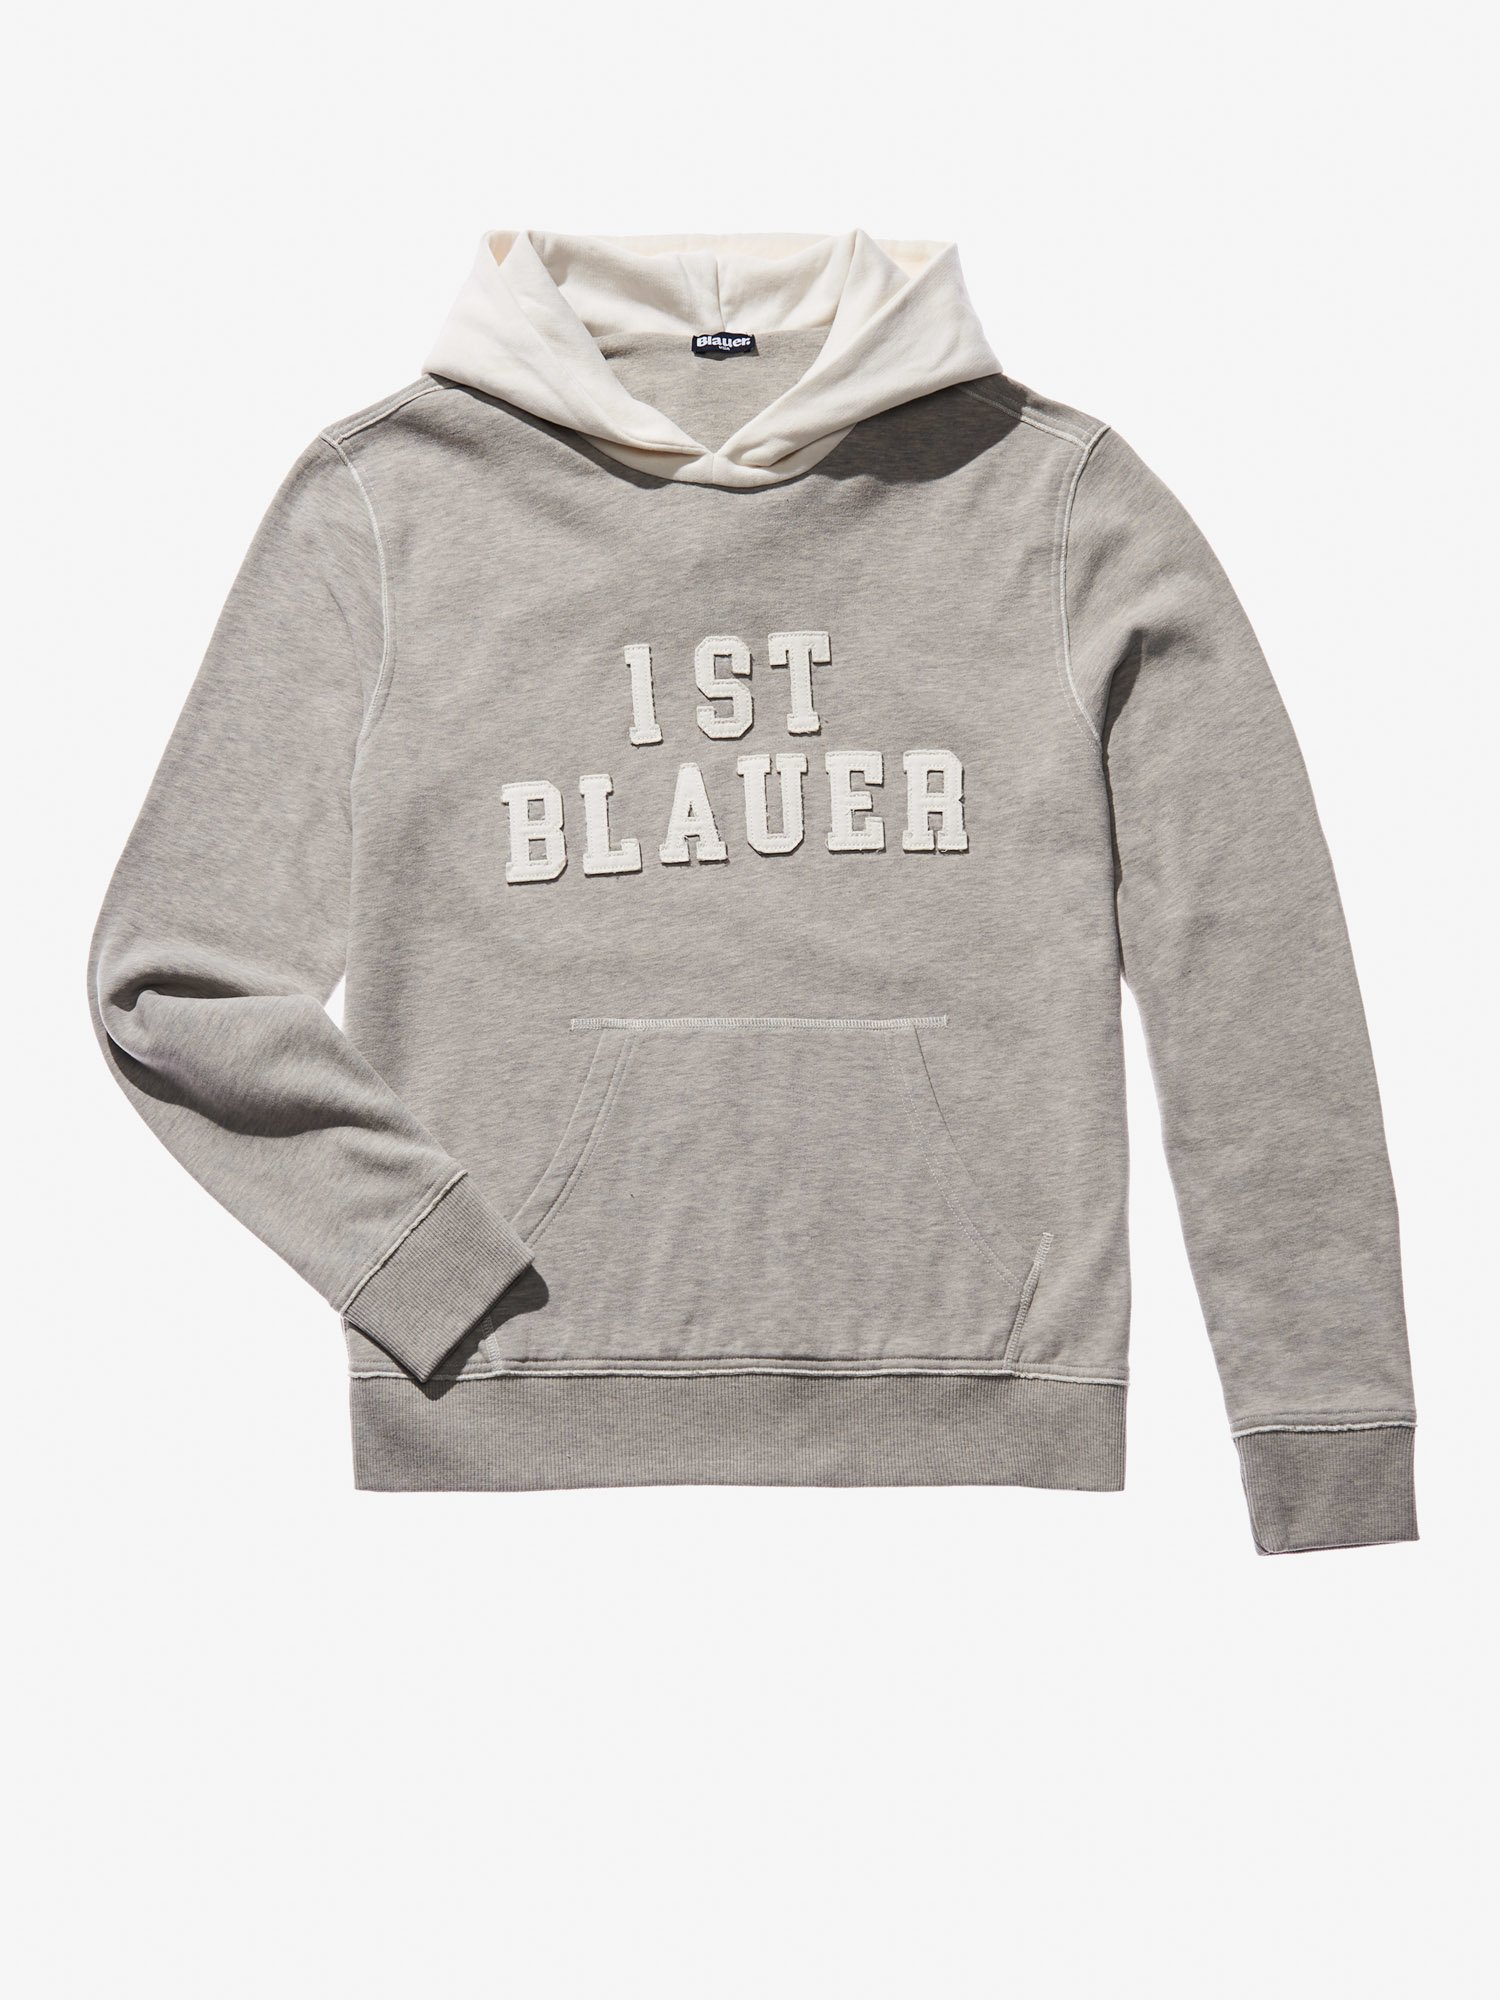 Blauer - CREW NECK SWEATSHIRT WITH POUCH POCKET - Melange Off White - Blauer